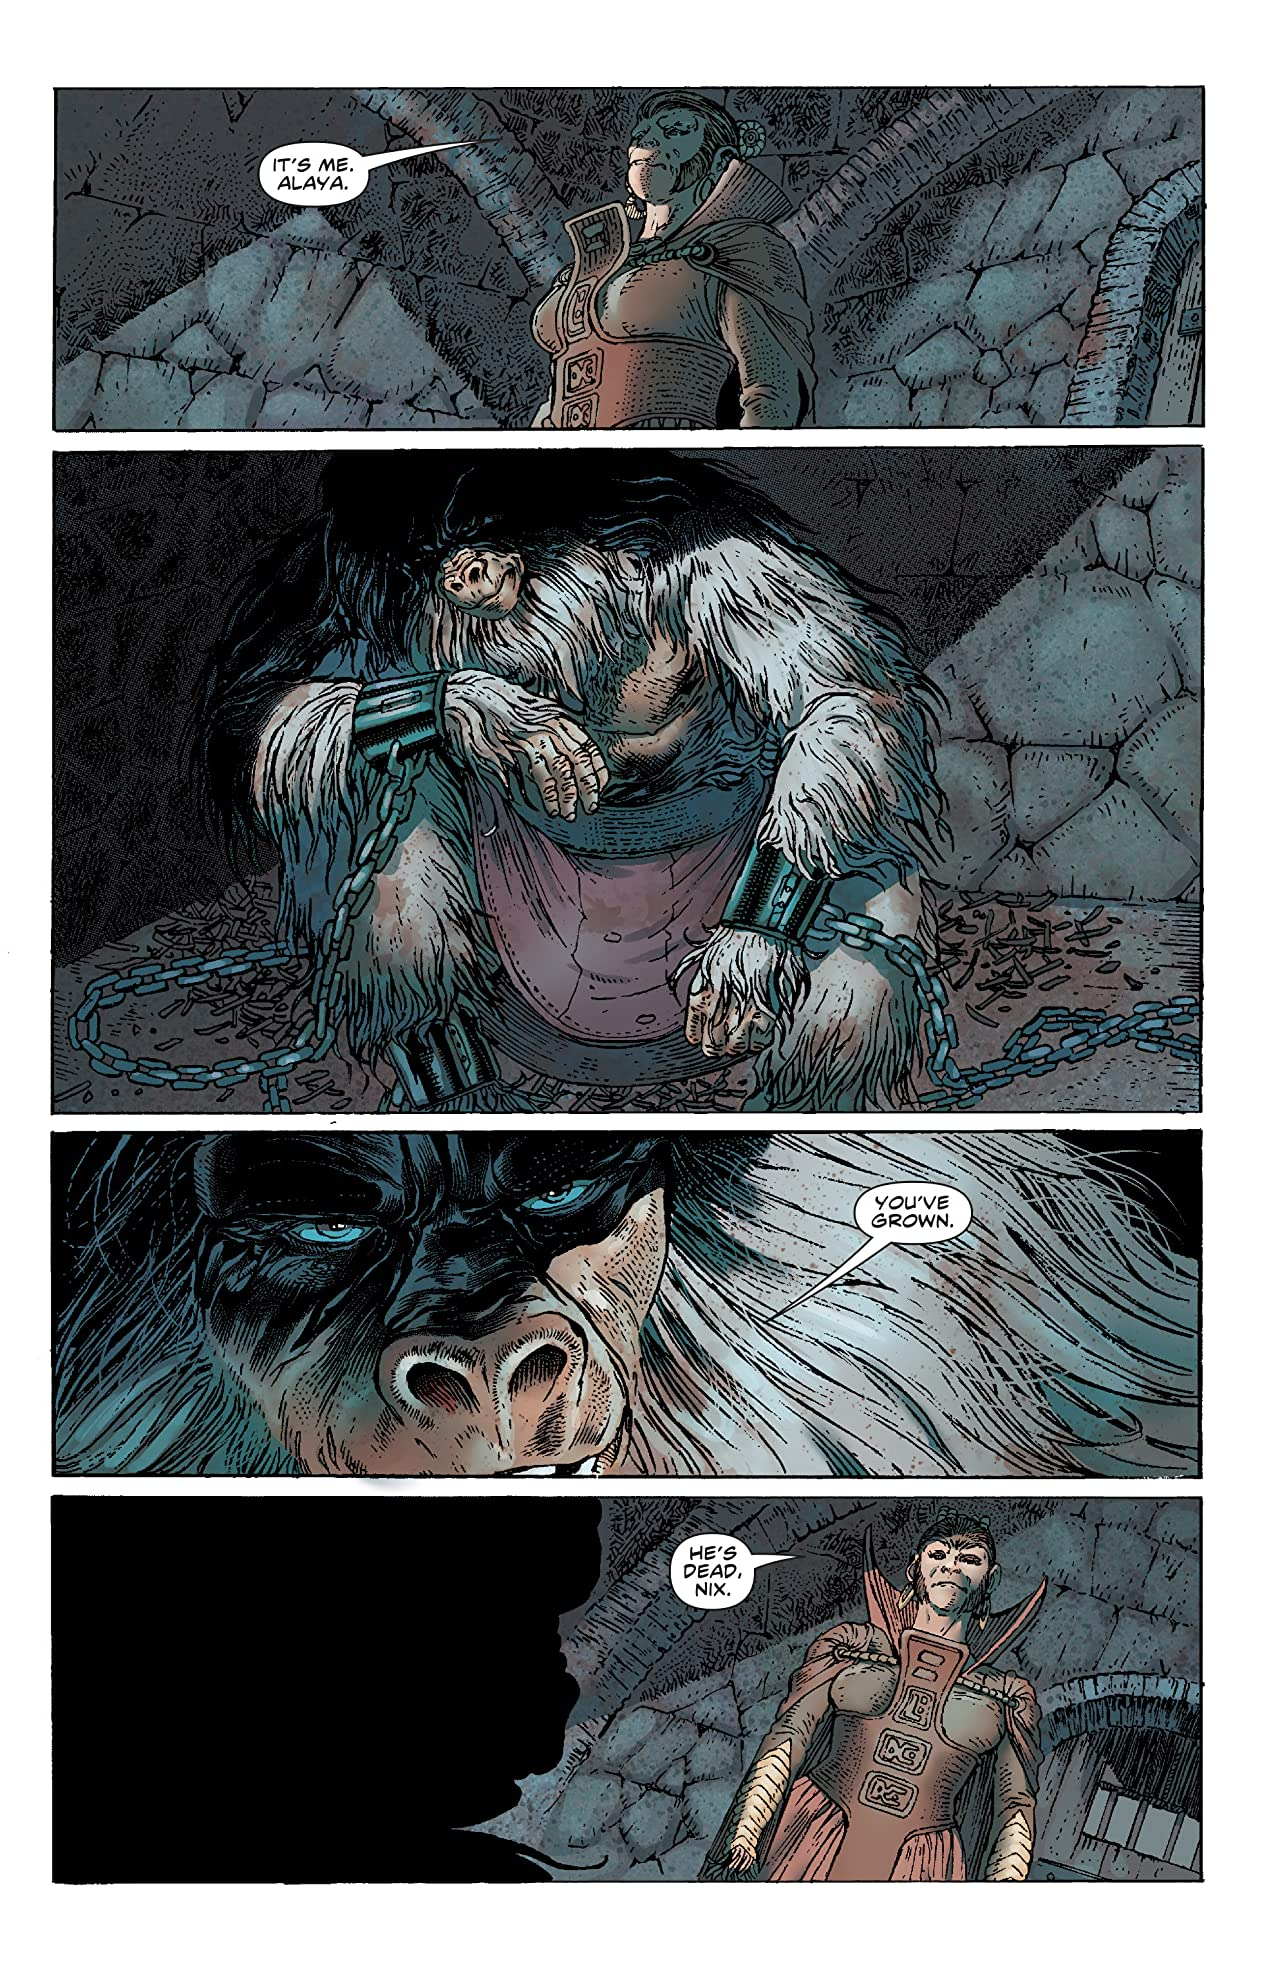 Planet of the Apes #2